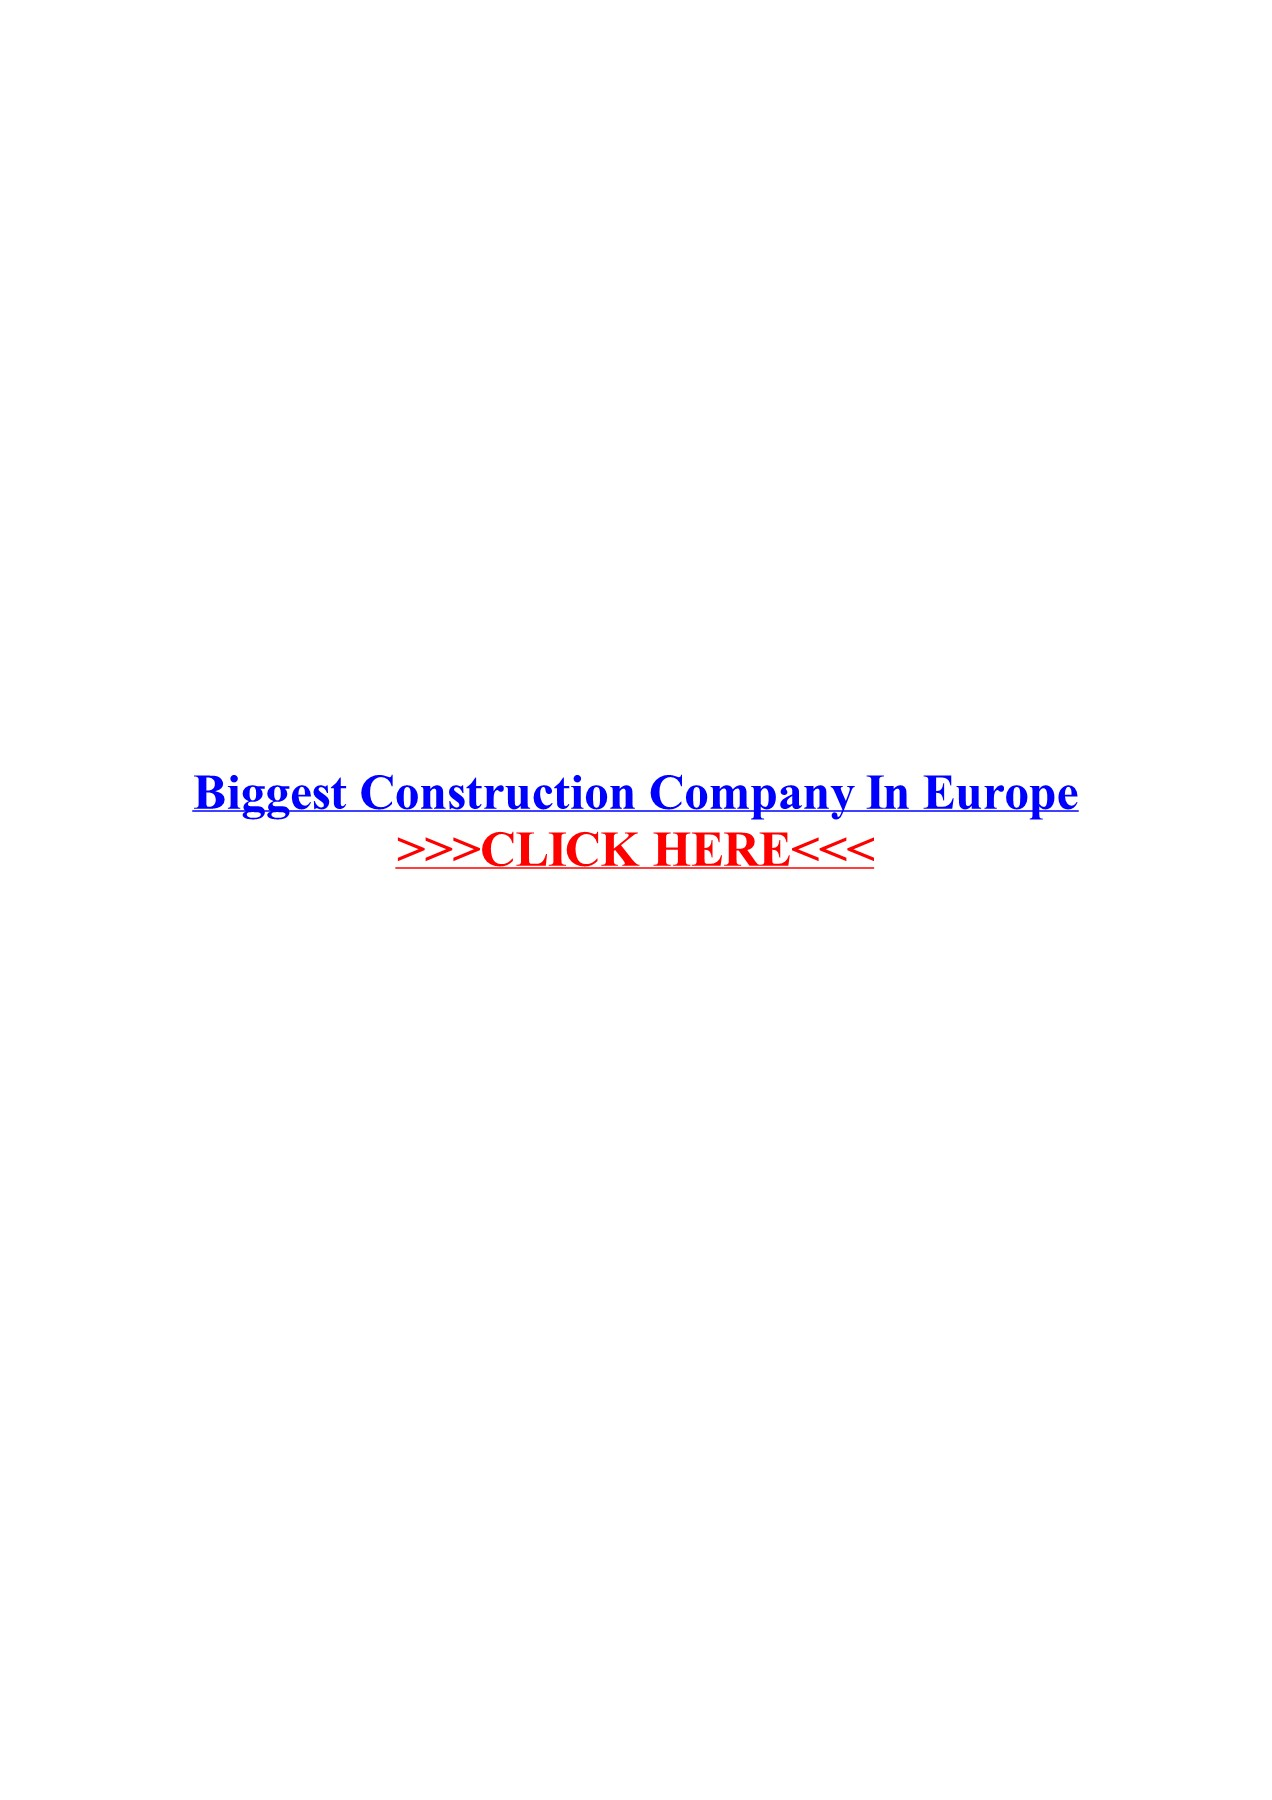 Biggest Construction Companies In Europe